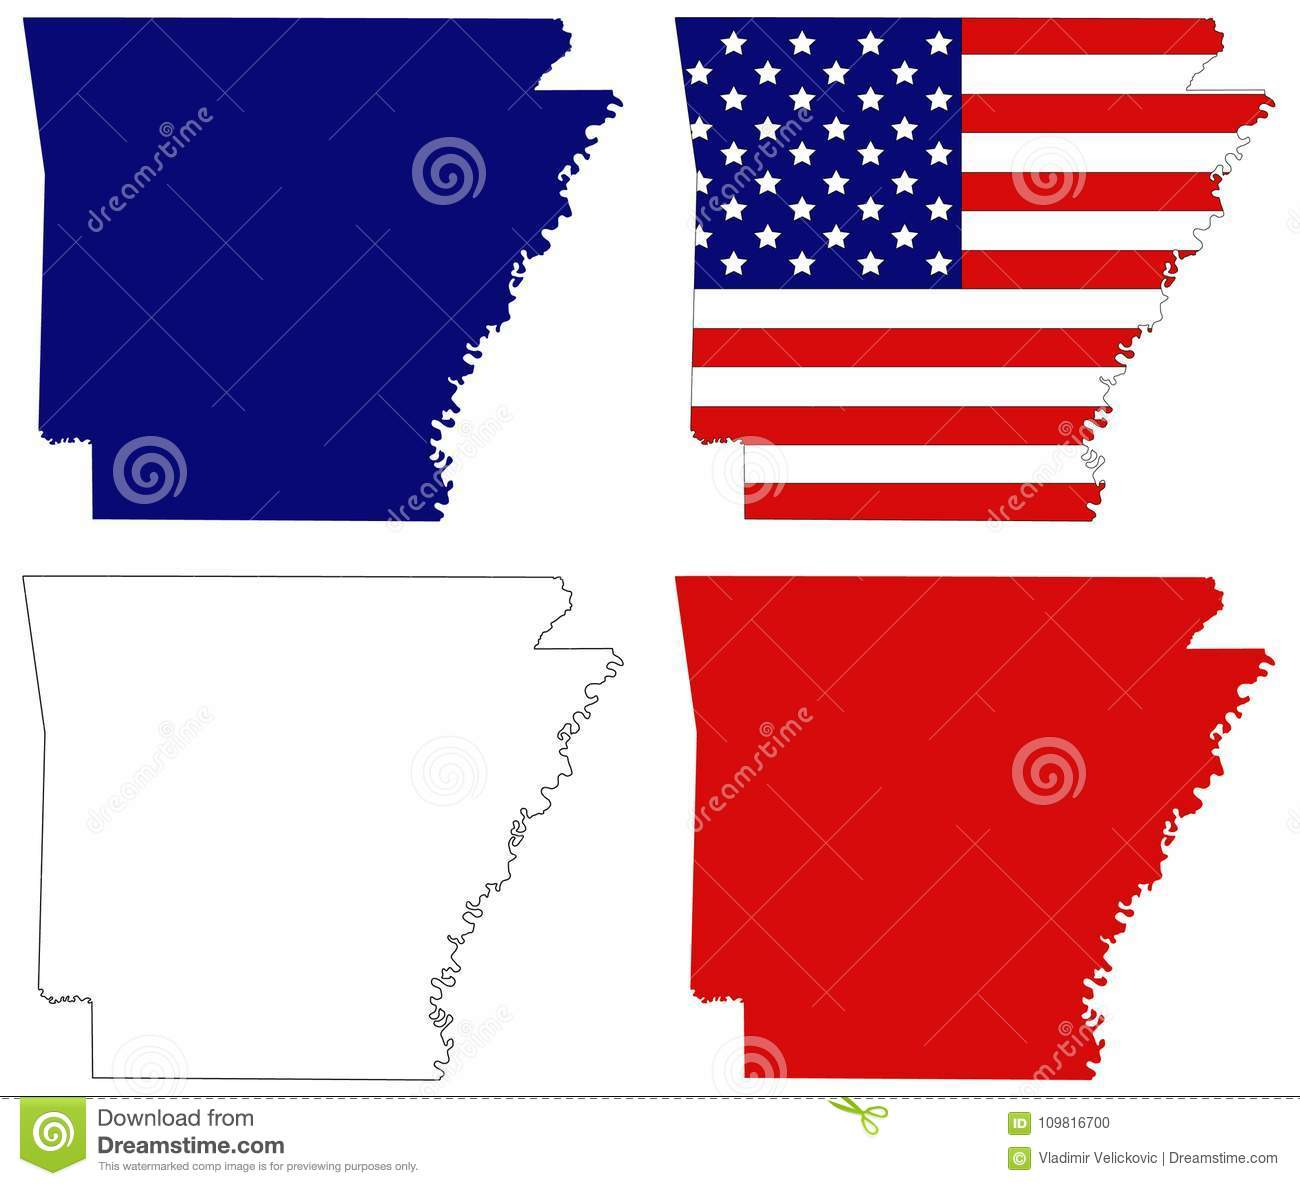 Southeastern Map Of Usa.Arkansas Map With Usa Flag State In The Southeastern Region Of The